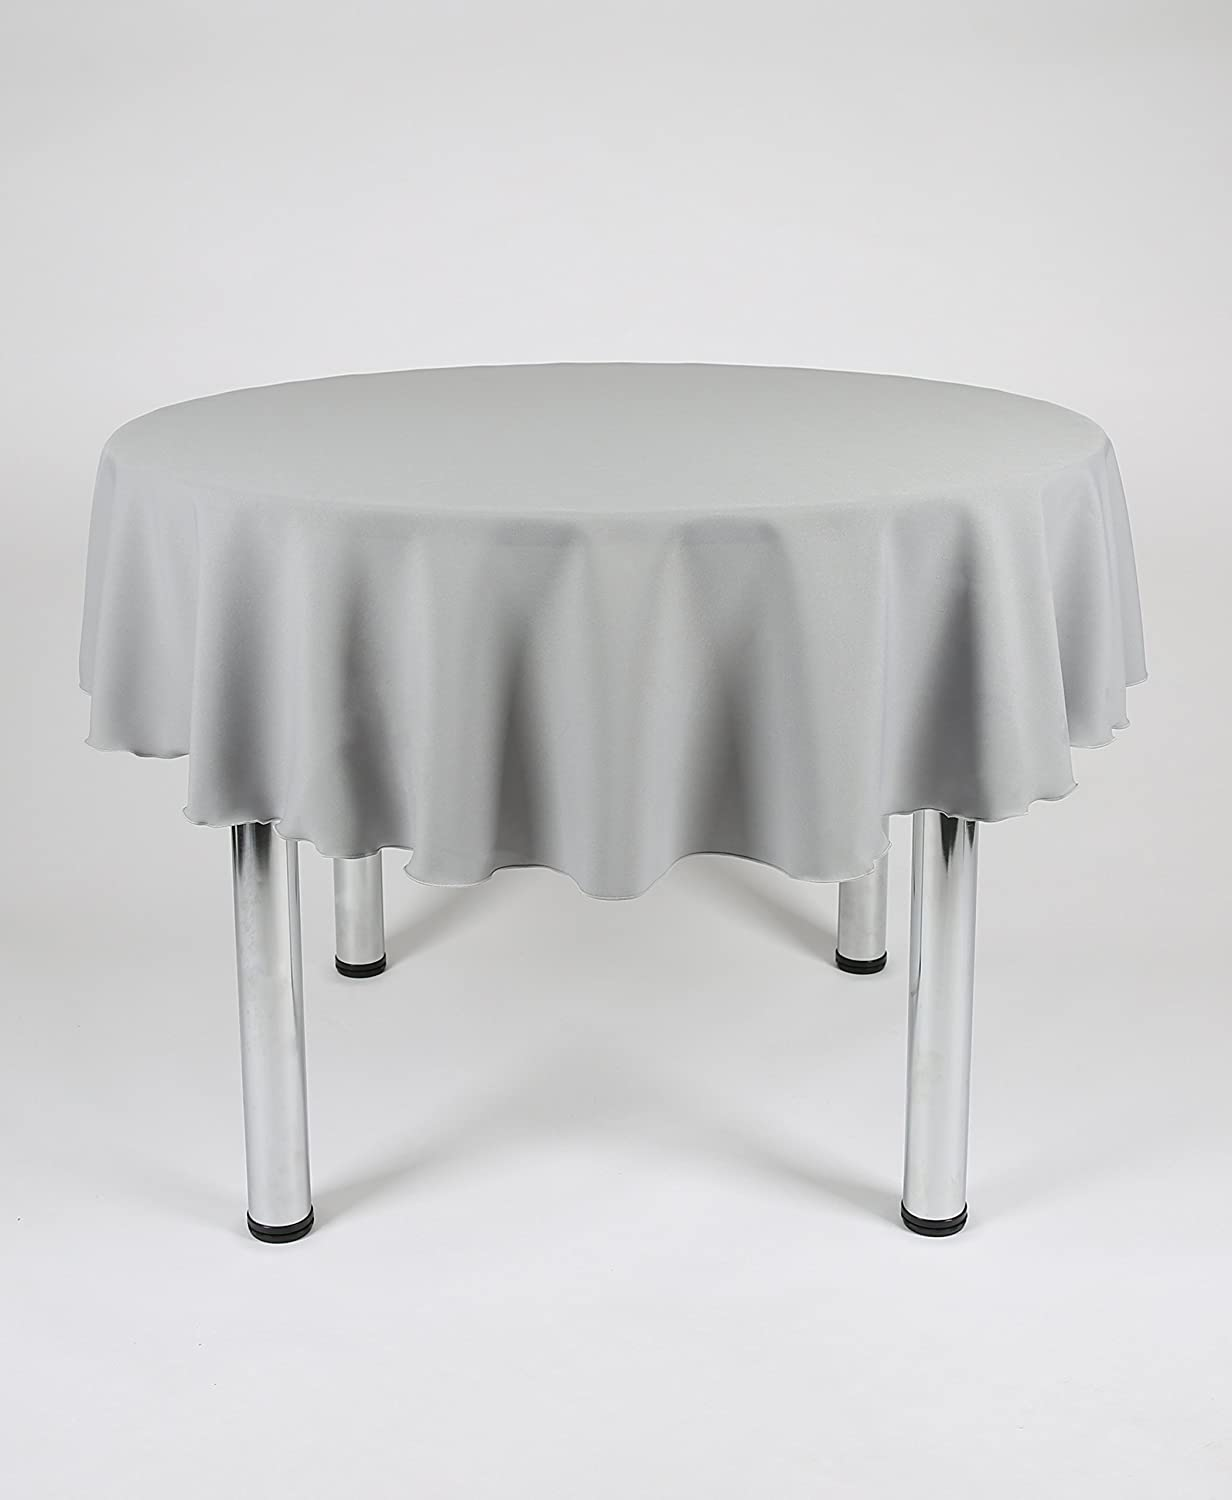 Round Kitchen Table Cloth 48 Diameter White Round Fabric Tablecloth Polyester Not Cotton